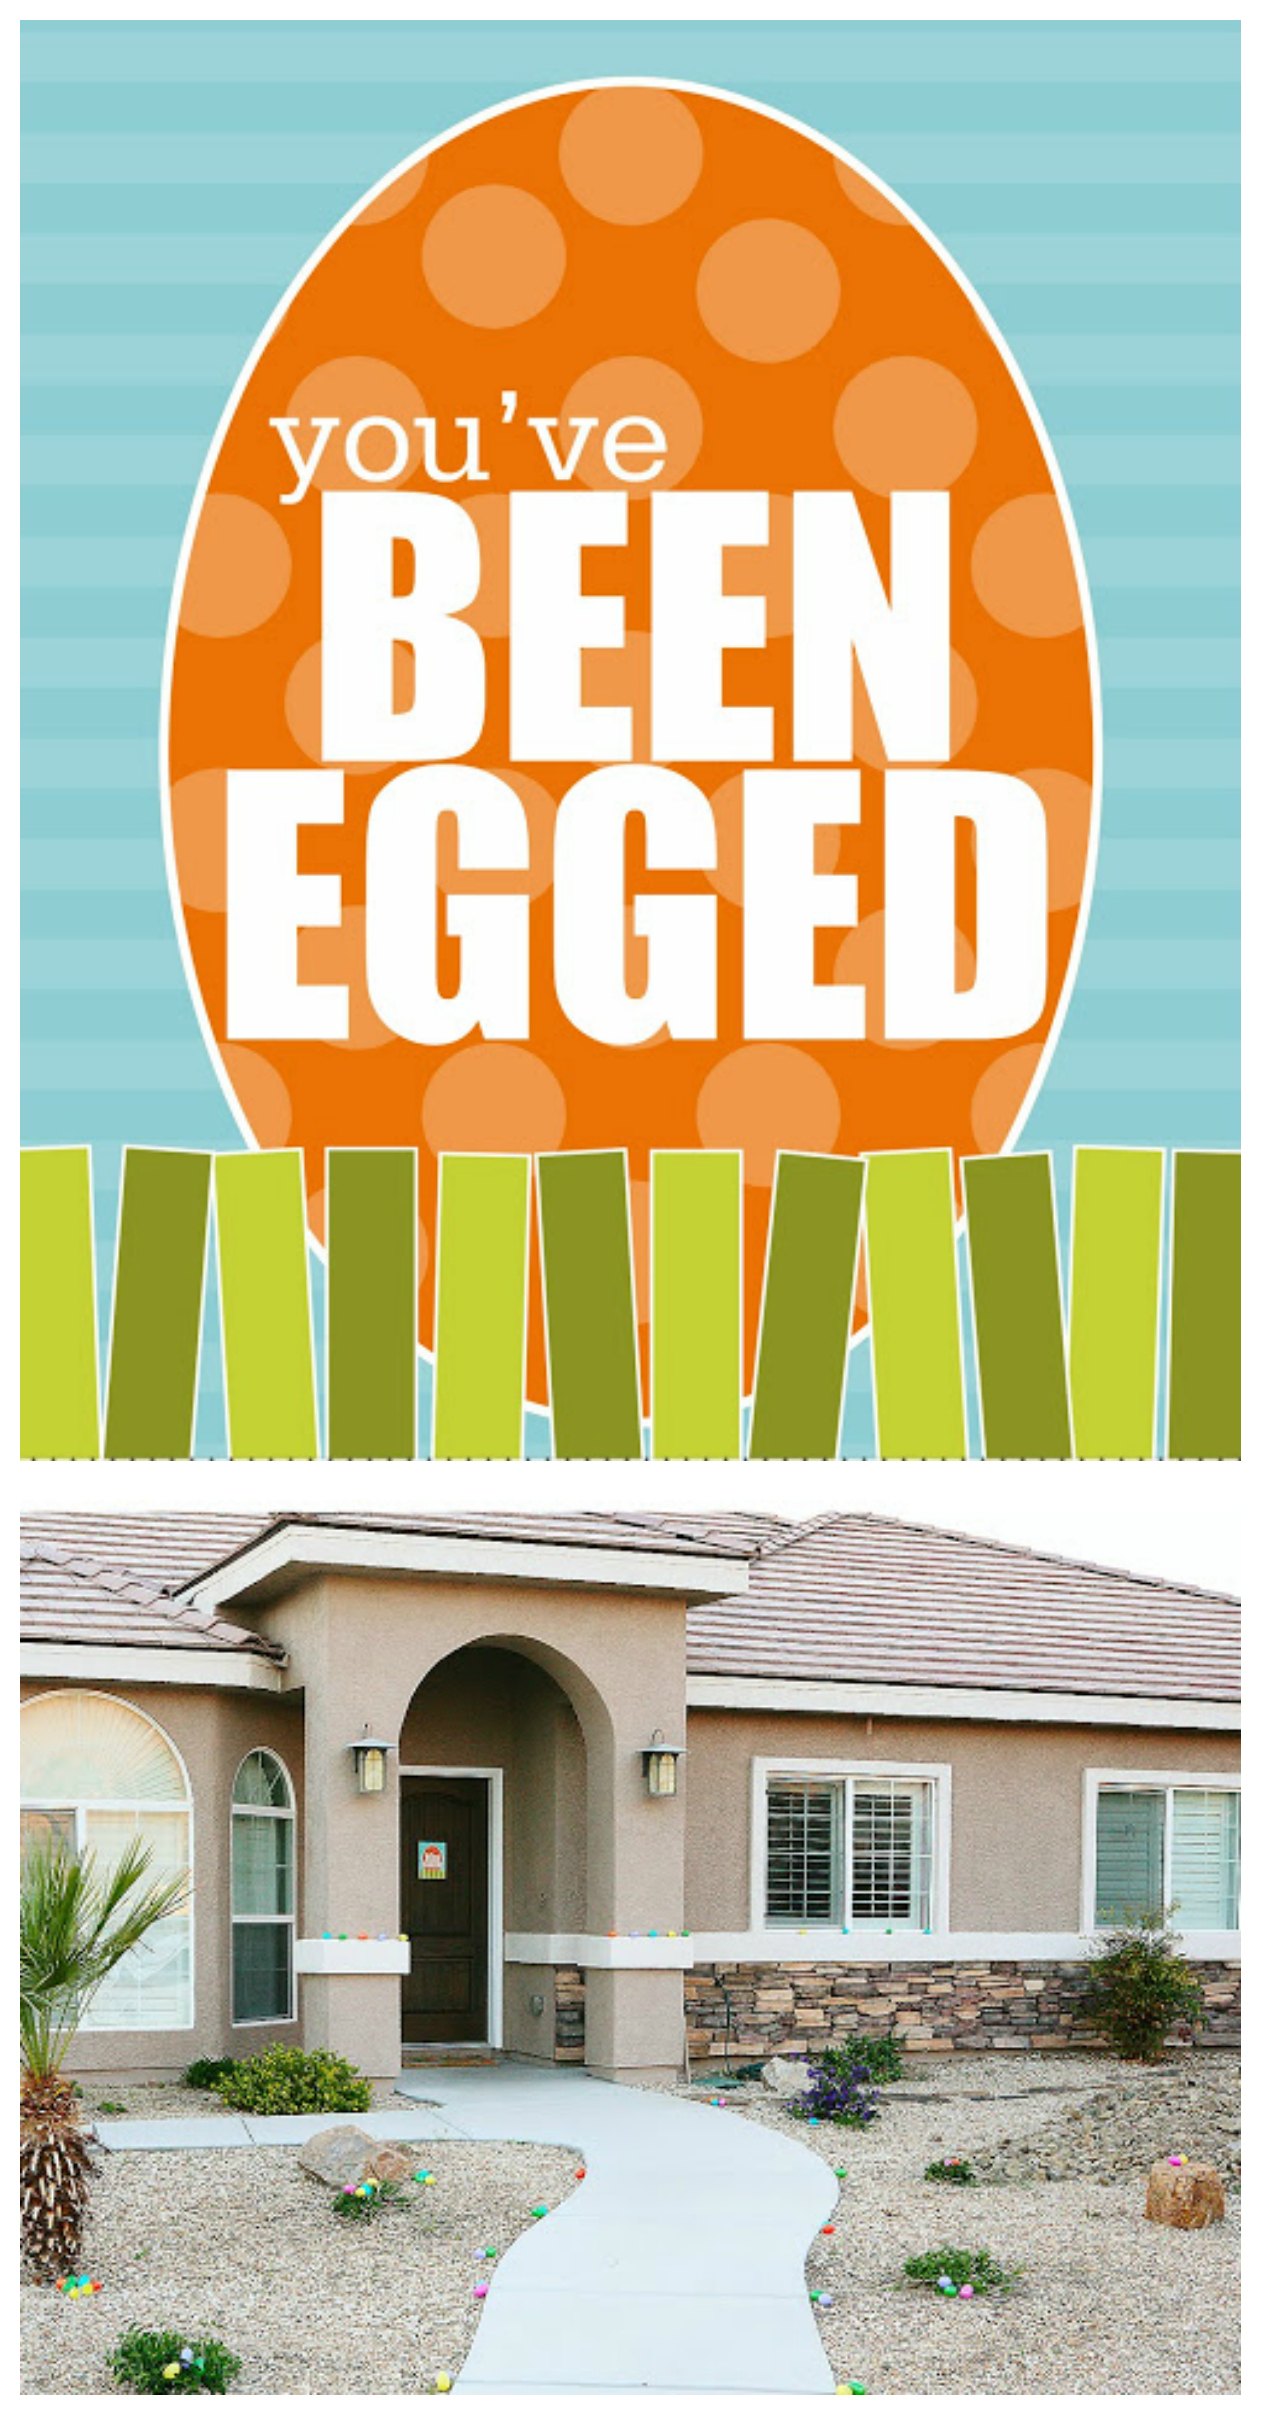 You've Been Egged! Such a fun Easter Tradition.